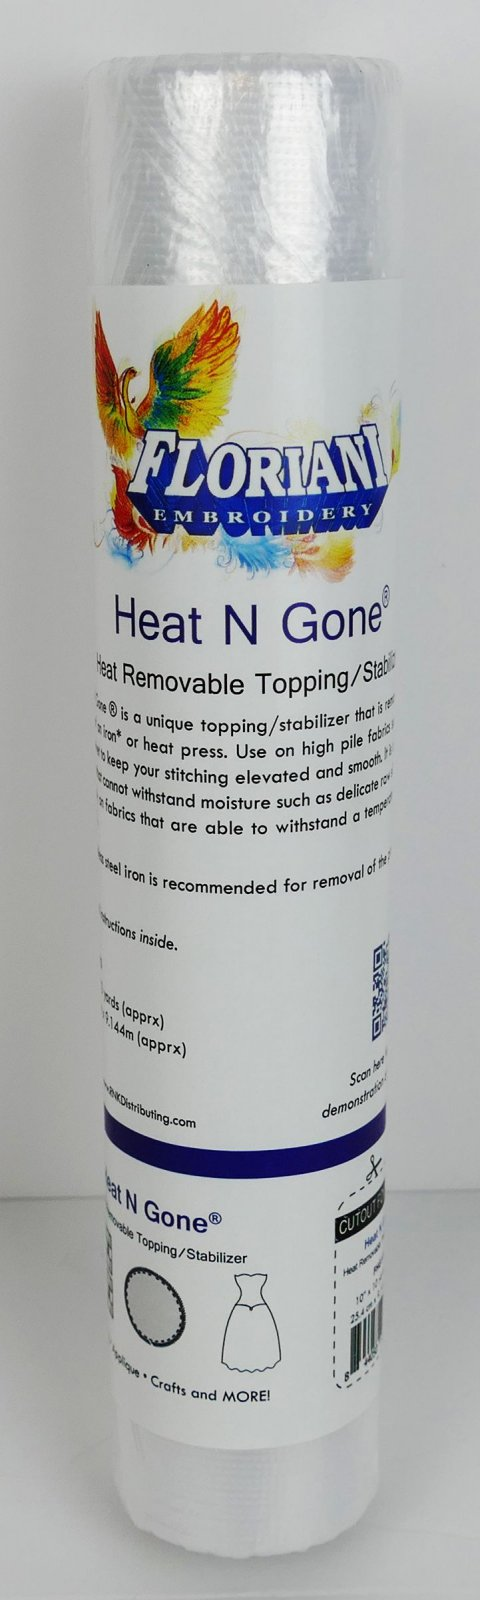 Floriani Heat N Gone Heat Removable Topping / Stabilizer - 10 x 10 yards